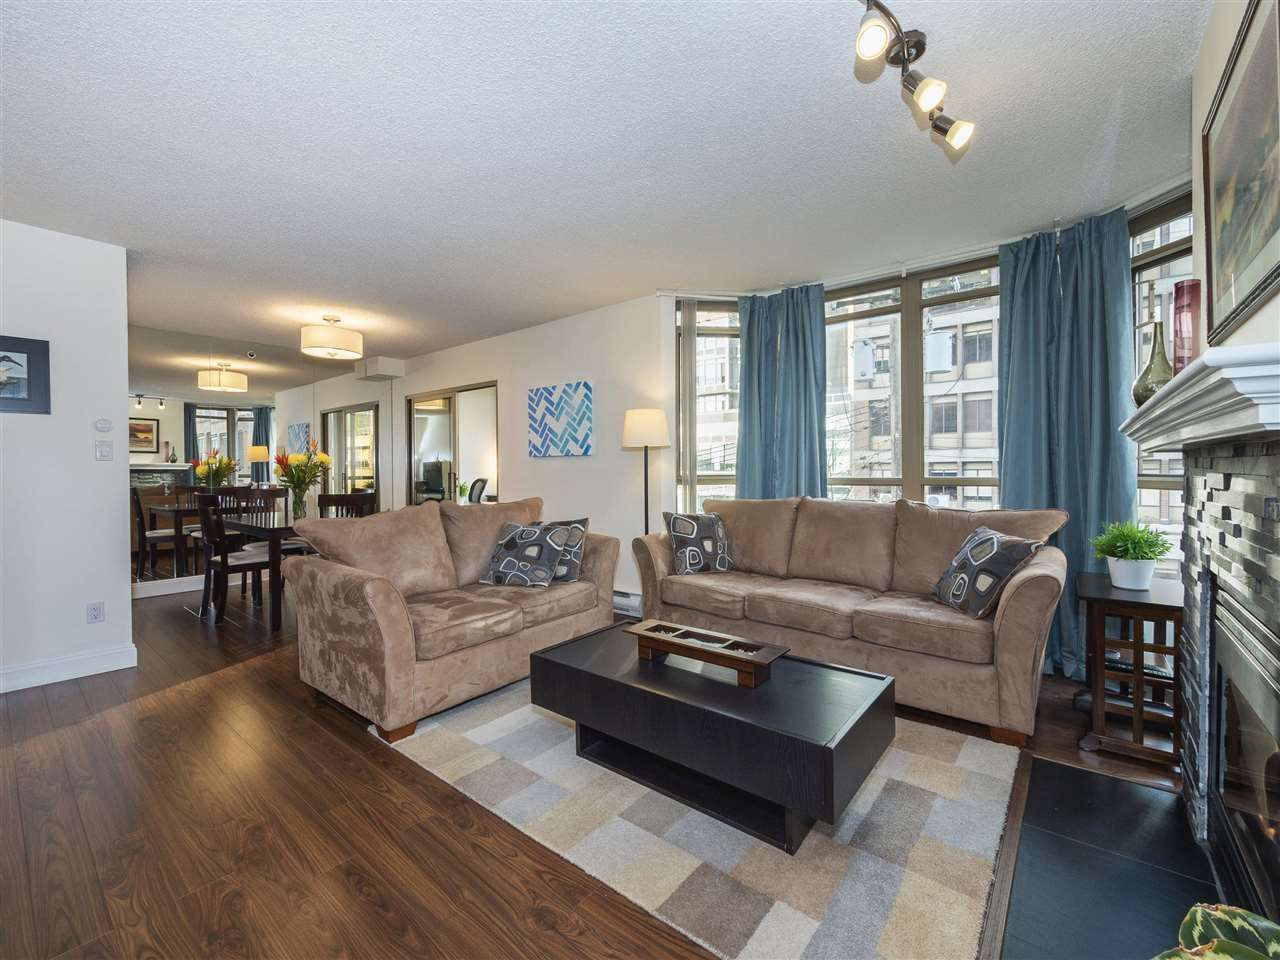 """Main Photo: 506 867 HAMILTON Street in Vancouver: Downtown VW Condo for sale in """"JARDINE'S LOOKOUT"""" (Vancouver West)  : MLS®# R2324358"""